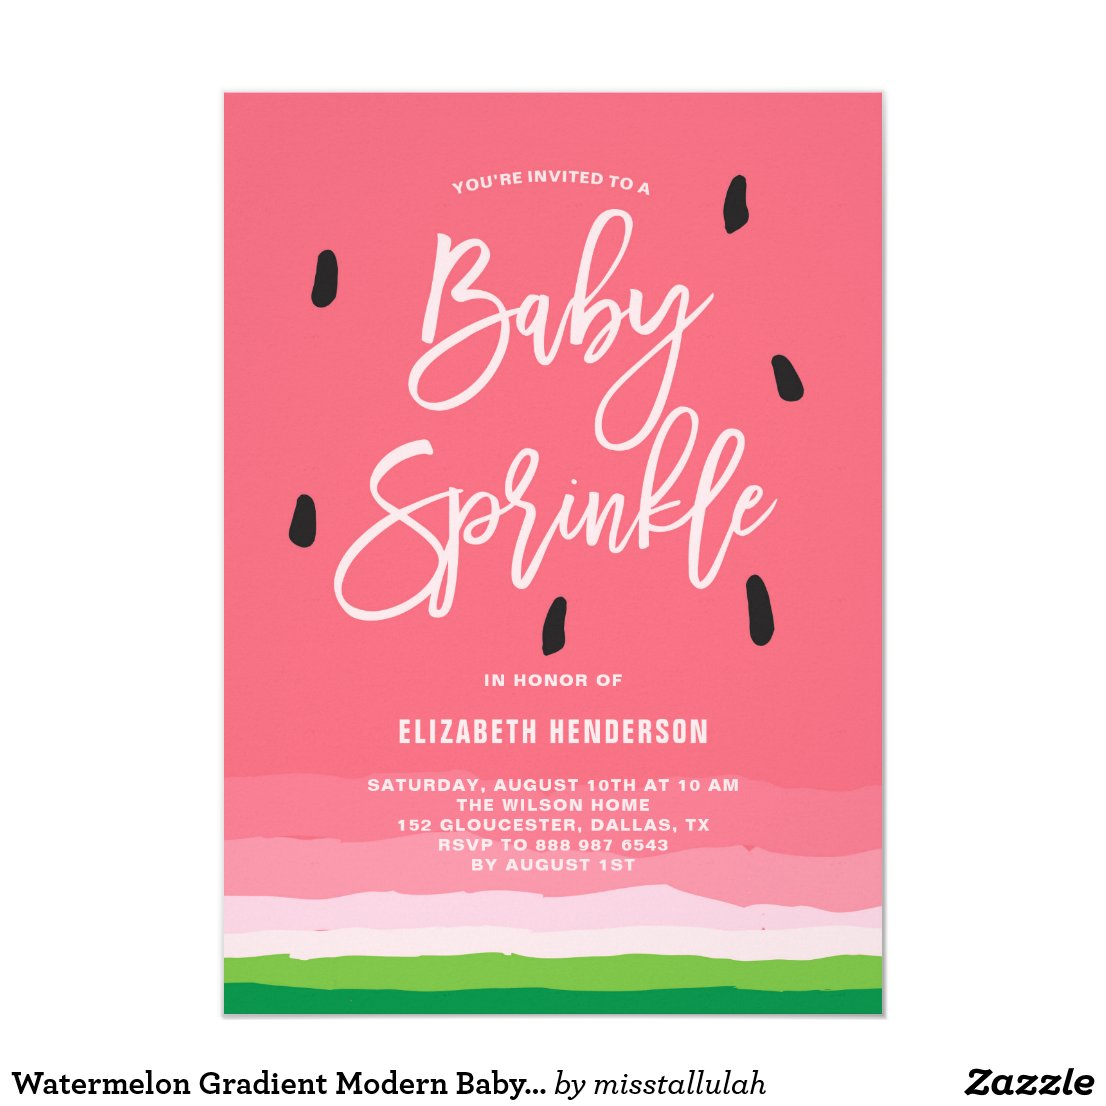 Watermelon Gradient Modern Baby Sprinkle